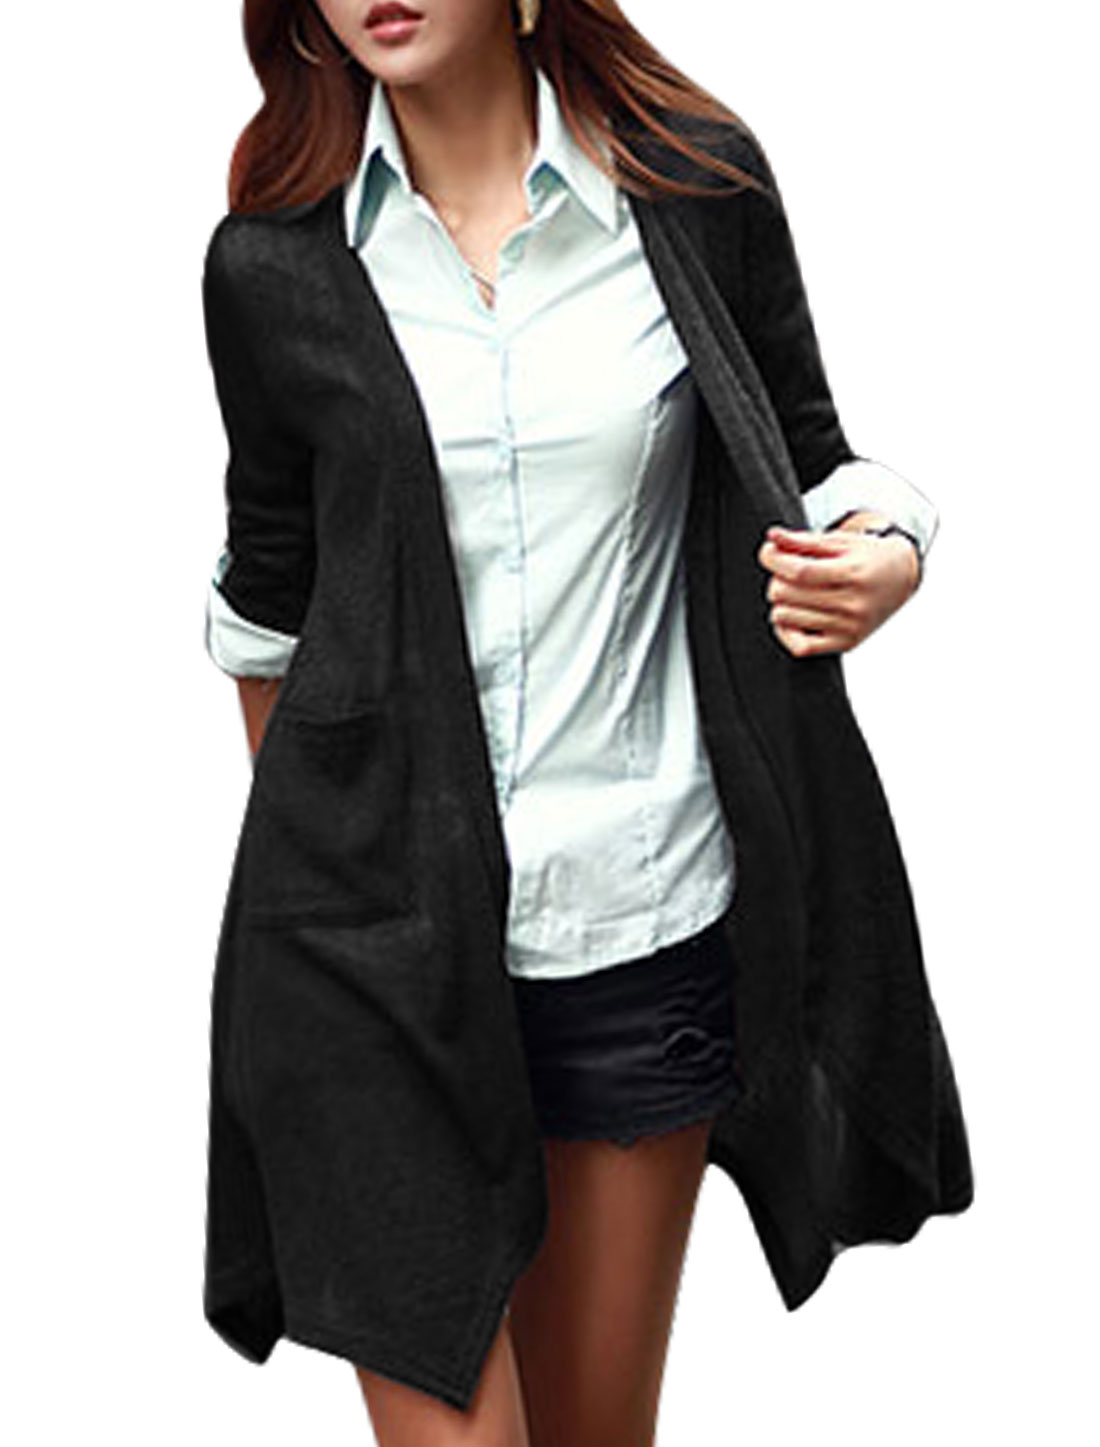 Women Front Opening Long Sleeves Tunic Knit Cardigan Black M